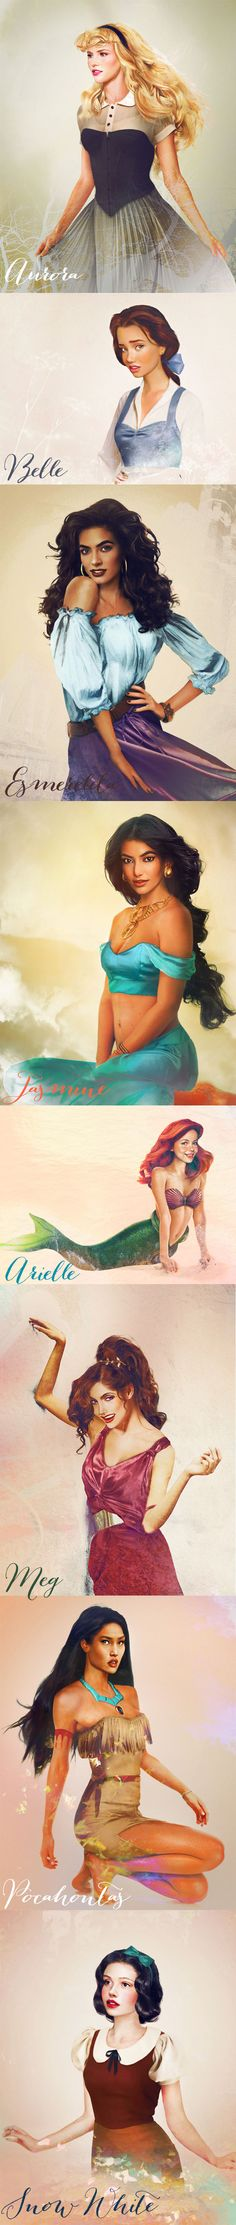 Disney Princesses in real life! so beautiful